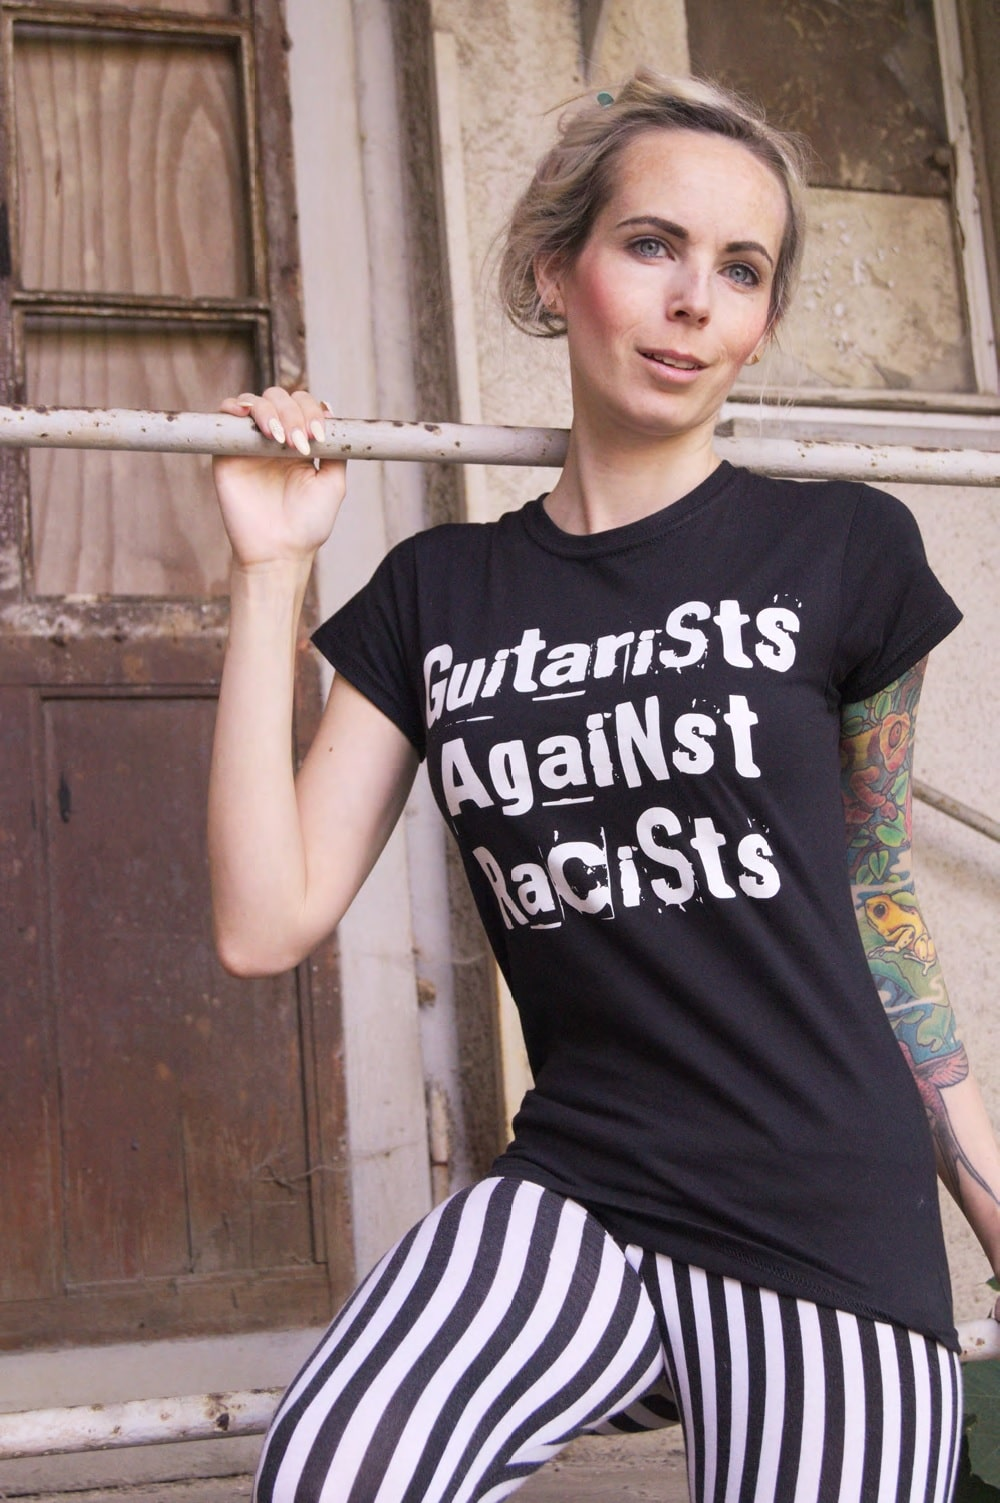 Guitarists against Racists 2